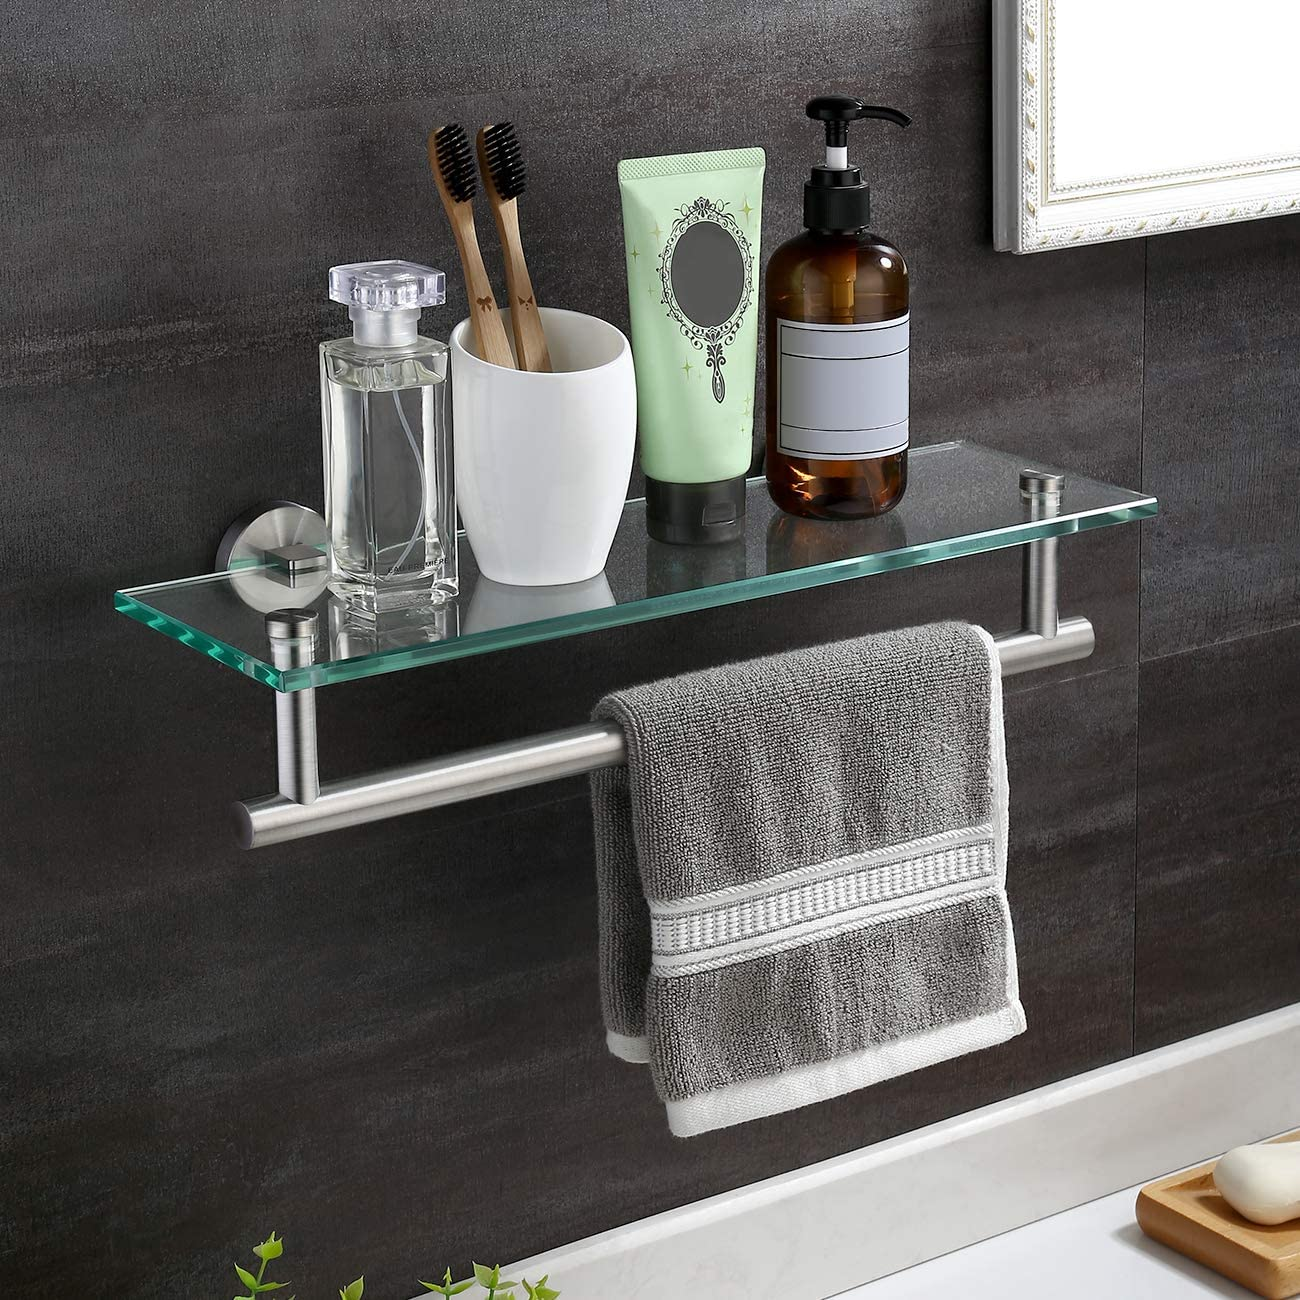 Amazon Com Kes Glass Shelf 16 Tempered Glass Floating Shelf Wall Mount Glass Shelves For Bathroom Wall Shelf With Towel Bar Sus304 Stainless Steel Glass Shower Shelf Brushed Steel A2022 2 Kitchen Dining